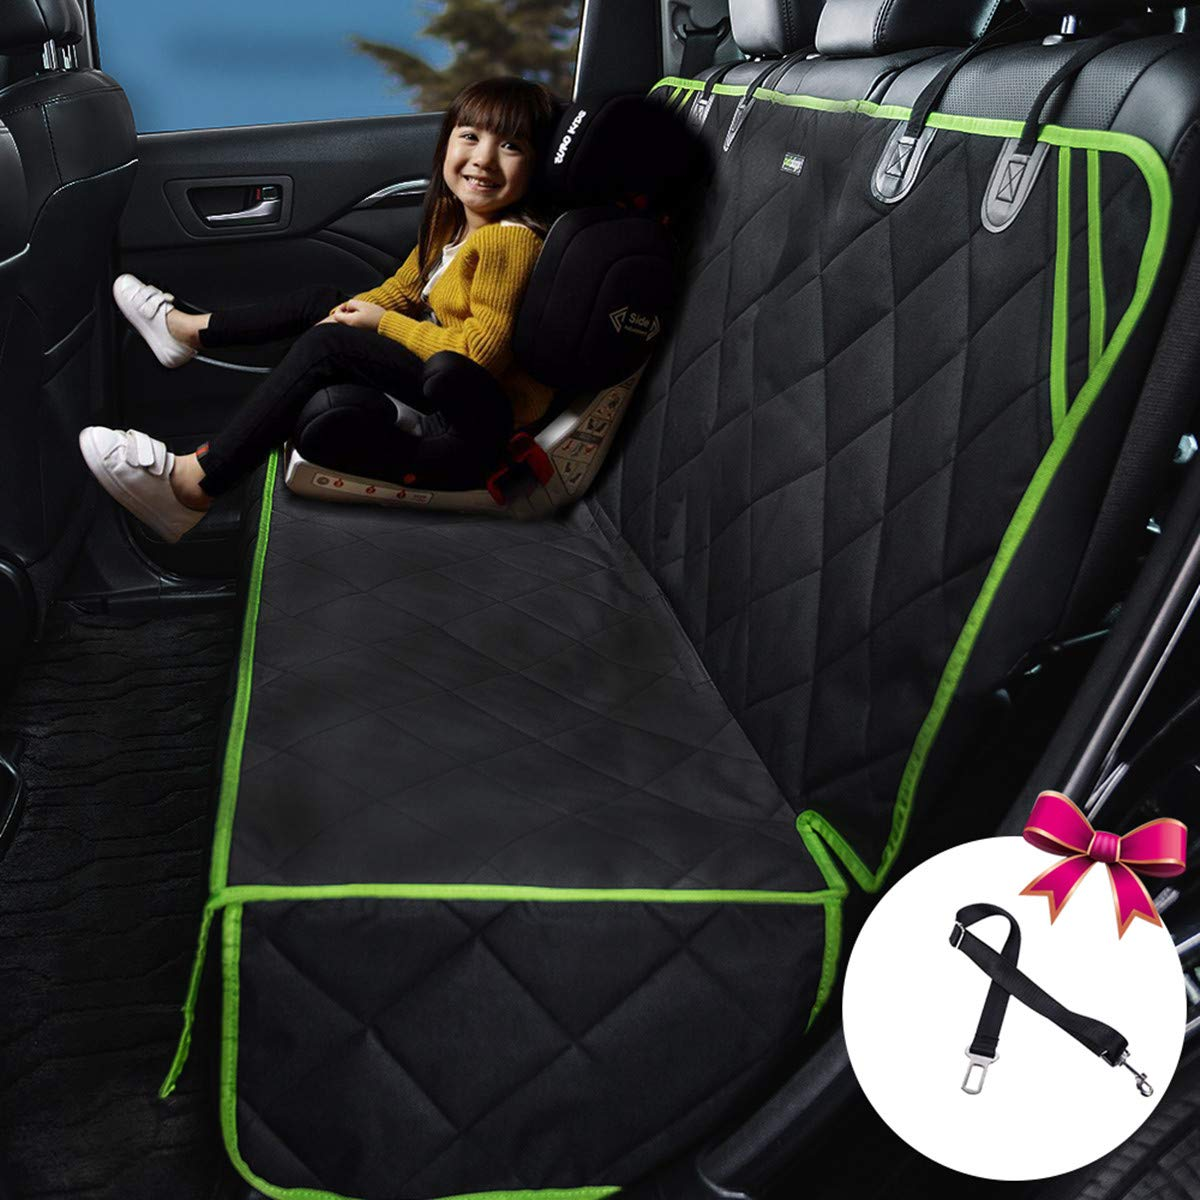 petalage ench Car Seat Cover Protector - Waterproof, Heavy-Duty and Nonslip Pet Car Seat Cover for Dogs with Universal Size Fits for Cars, Trucks & SUV (Green Edge) (56''X50'')